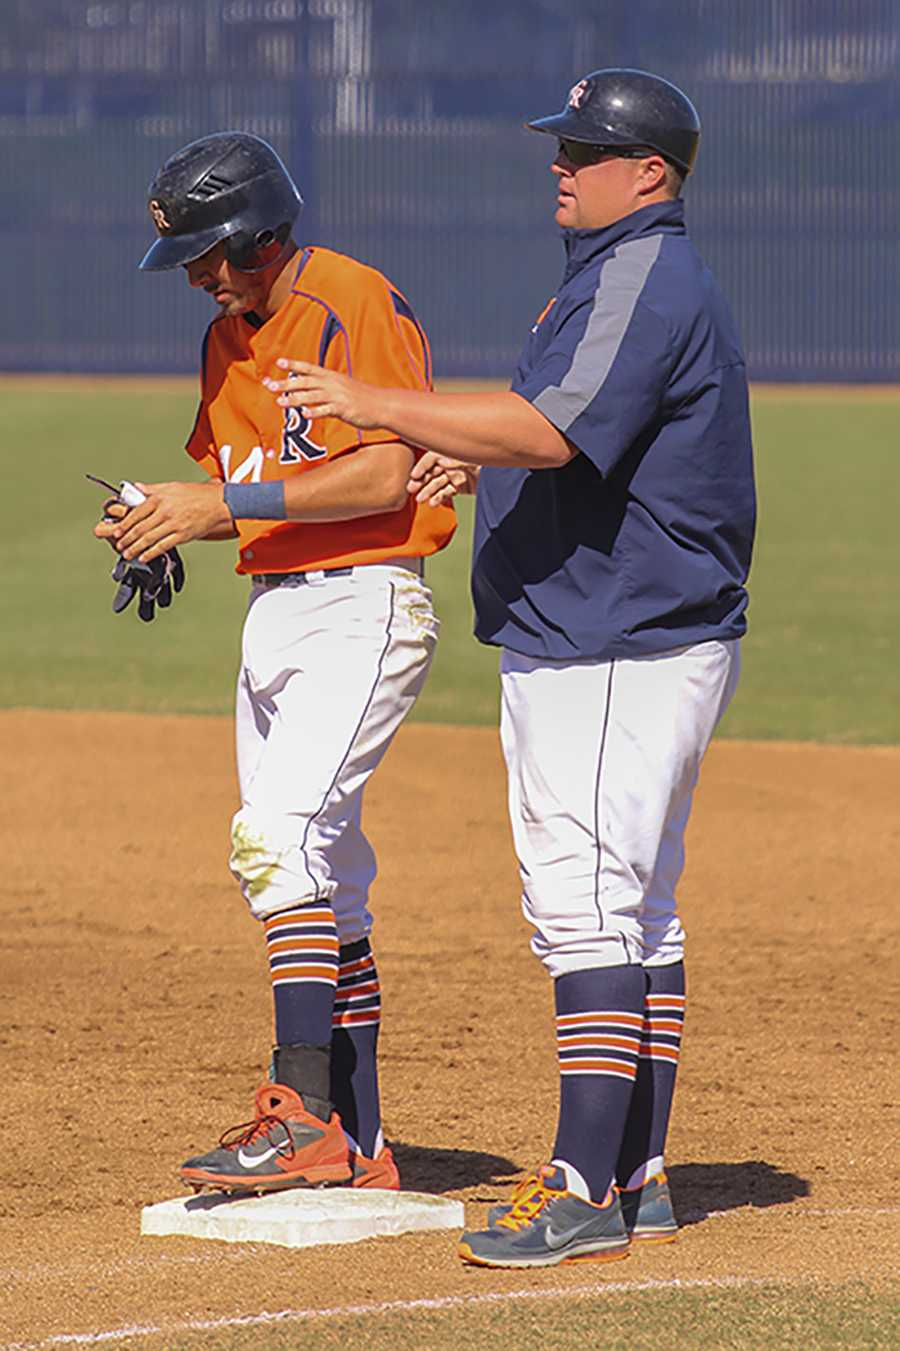 Former Oakland Athletic and Sacramento Rivercat Brad Kilby (Right) coaches a Cosumnes River College Hawks player during a game on March 20.